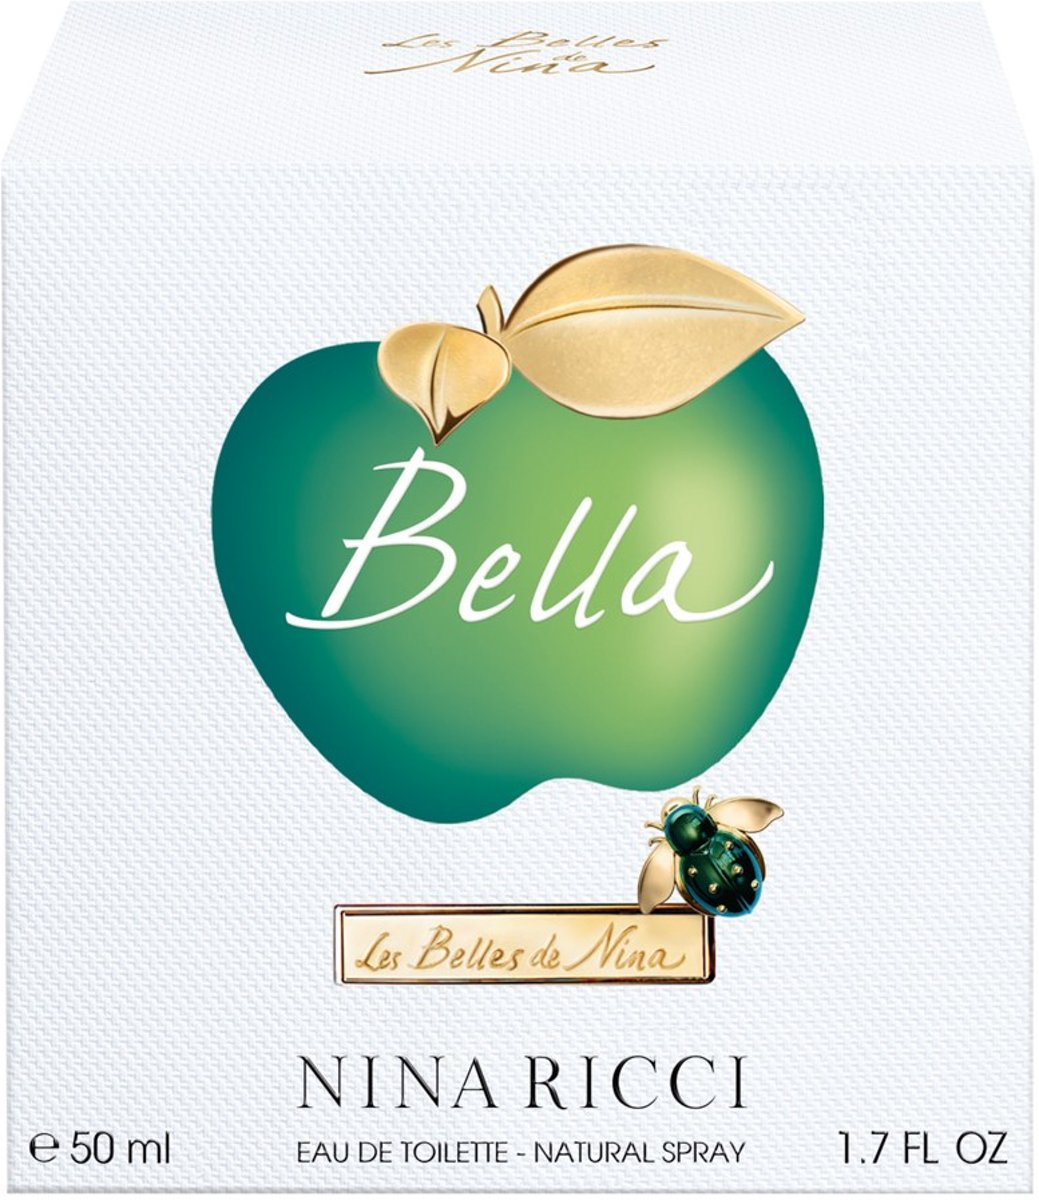 Nina Ricci Bella Eau De Toilette Spray - 50ml